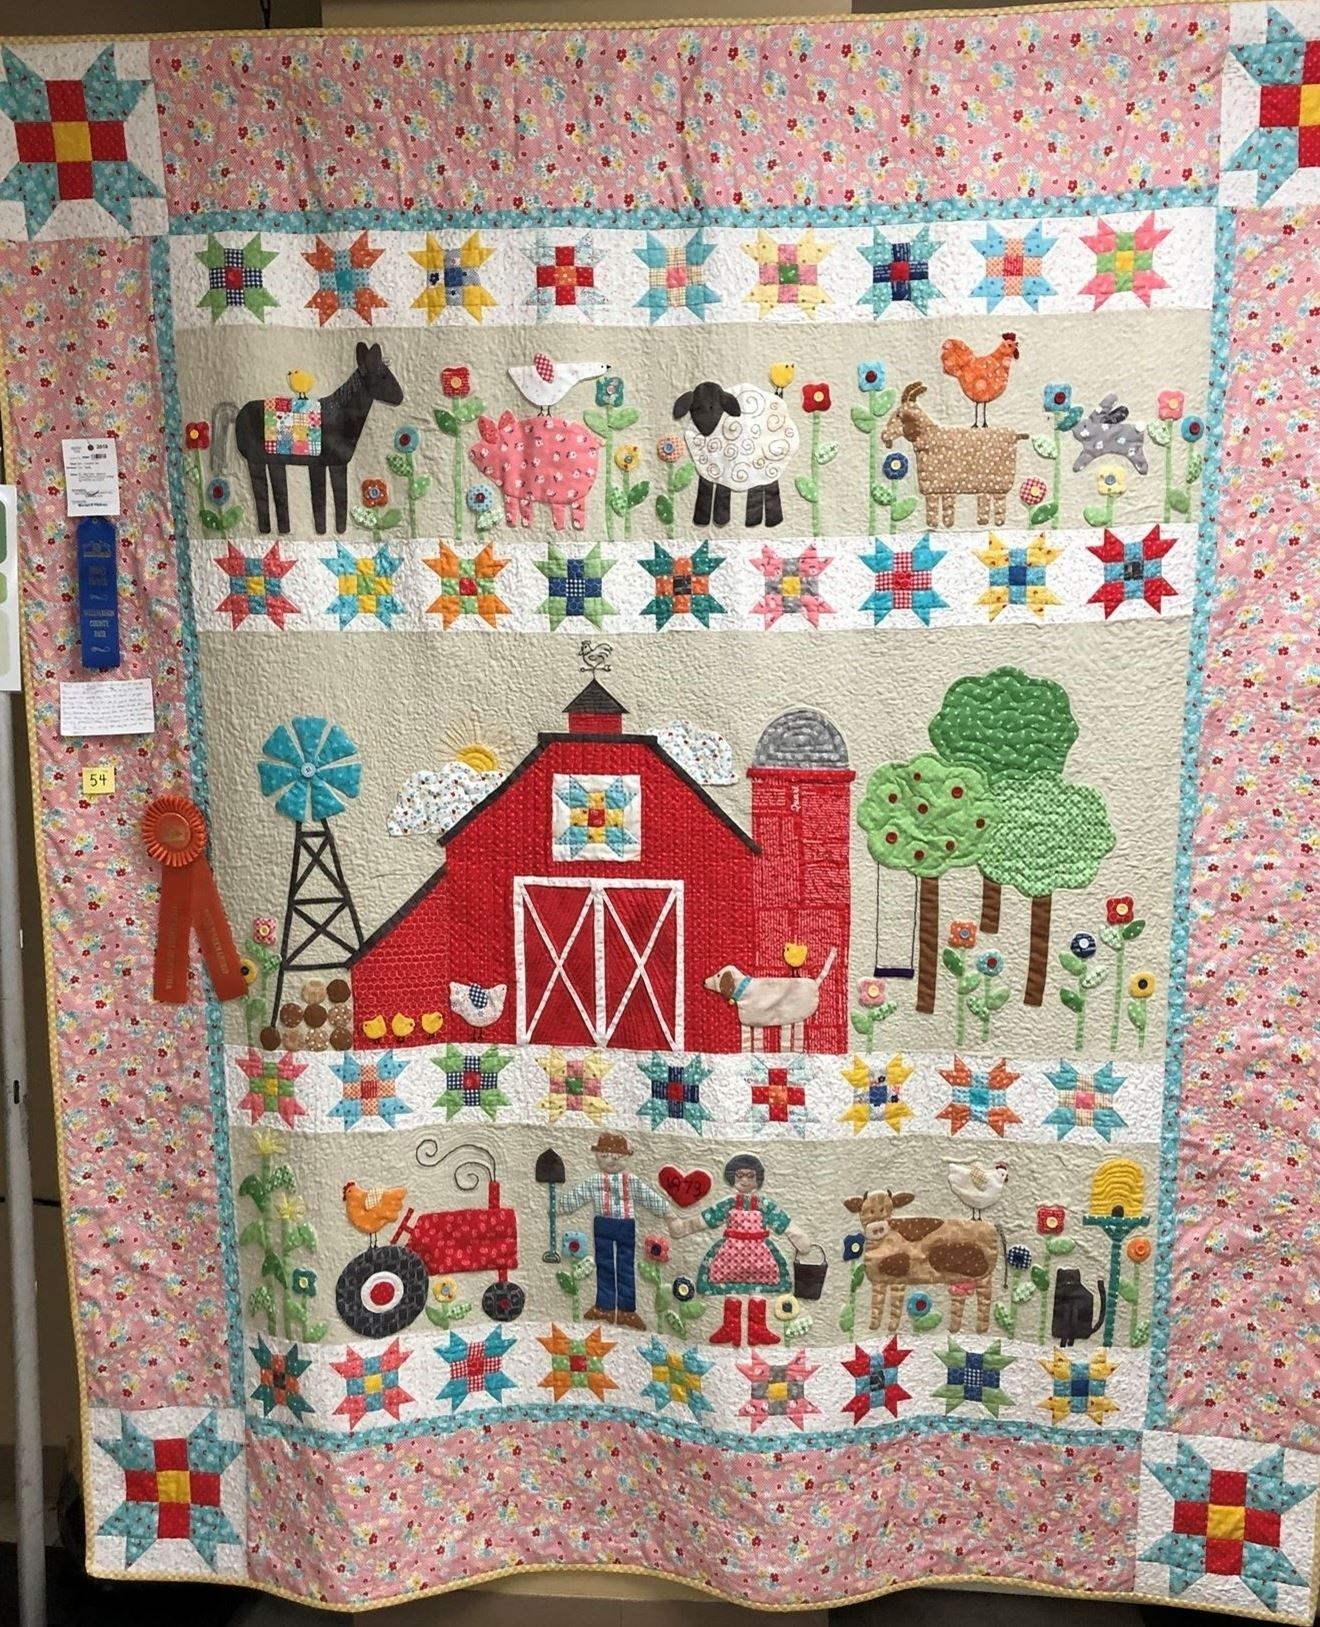 Farm scene quilt with link to enter Creative Arts divisions